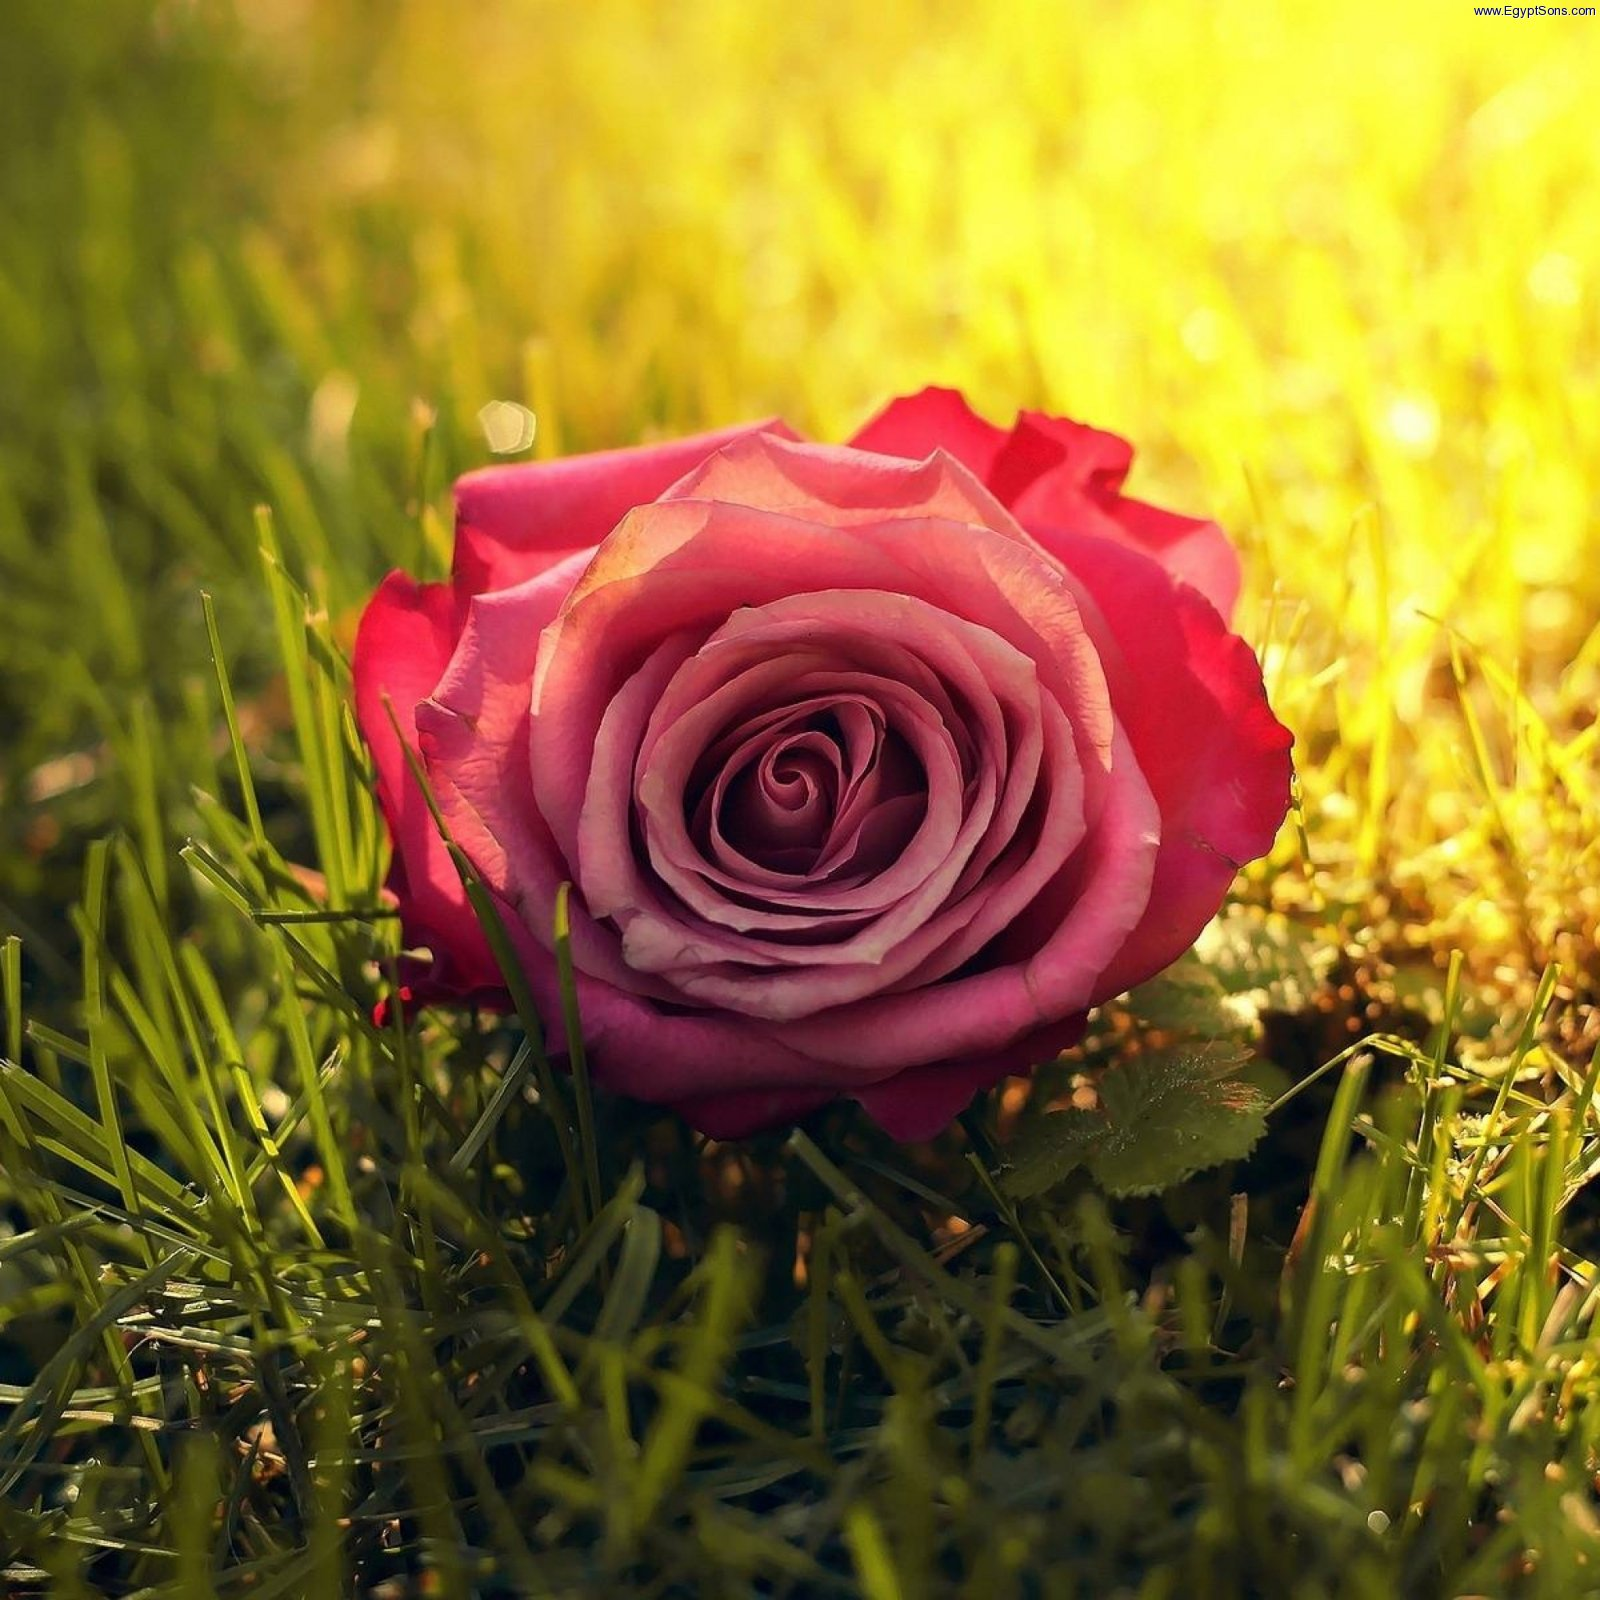 Rose Grass Sunbeam